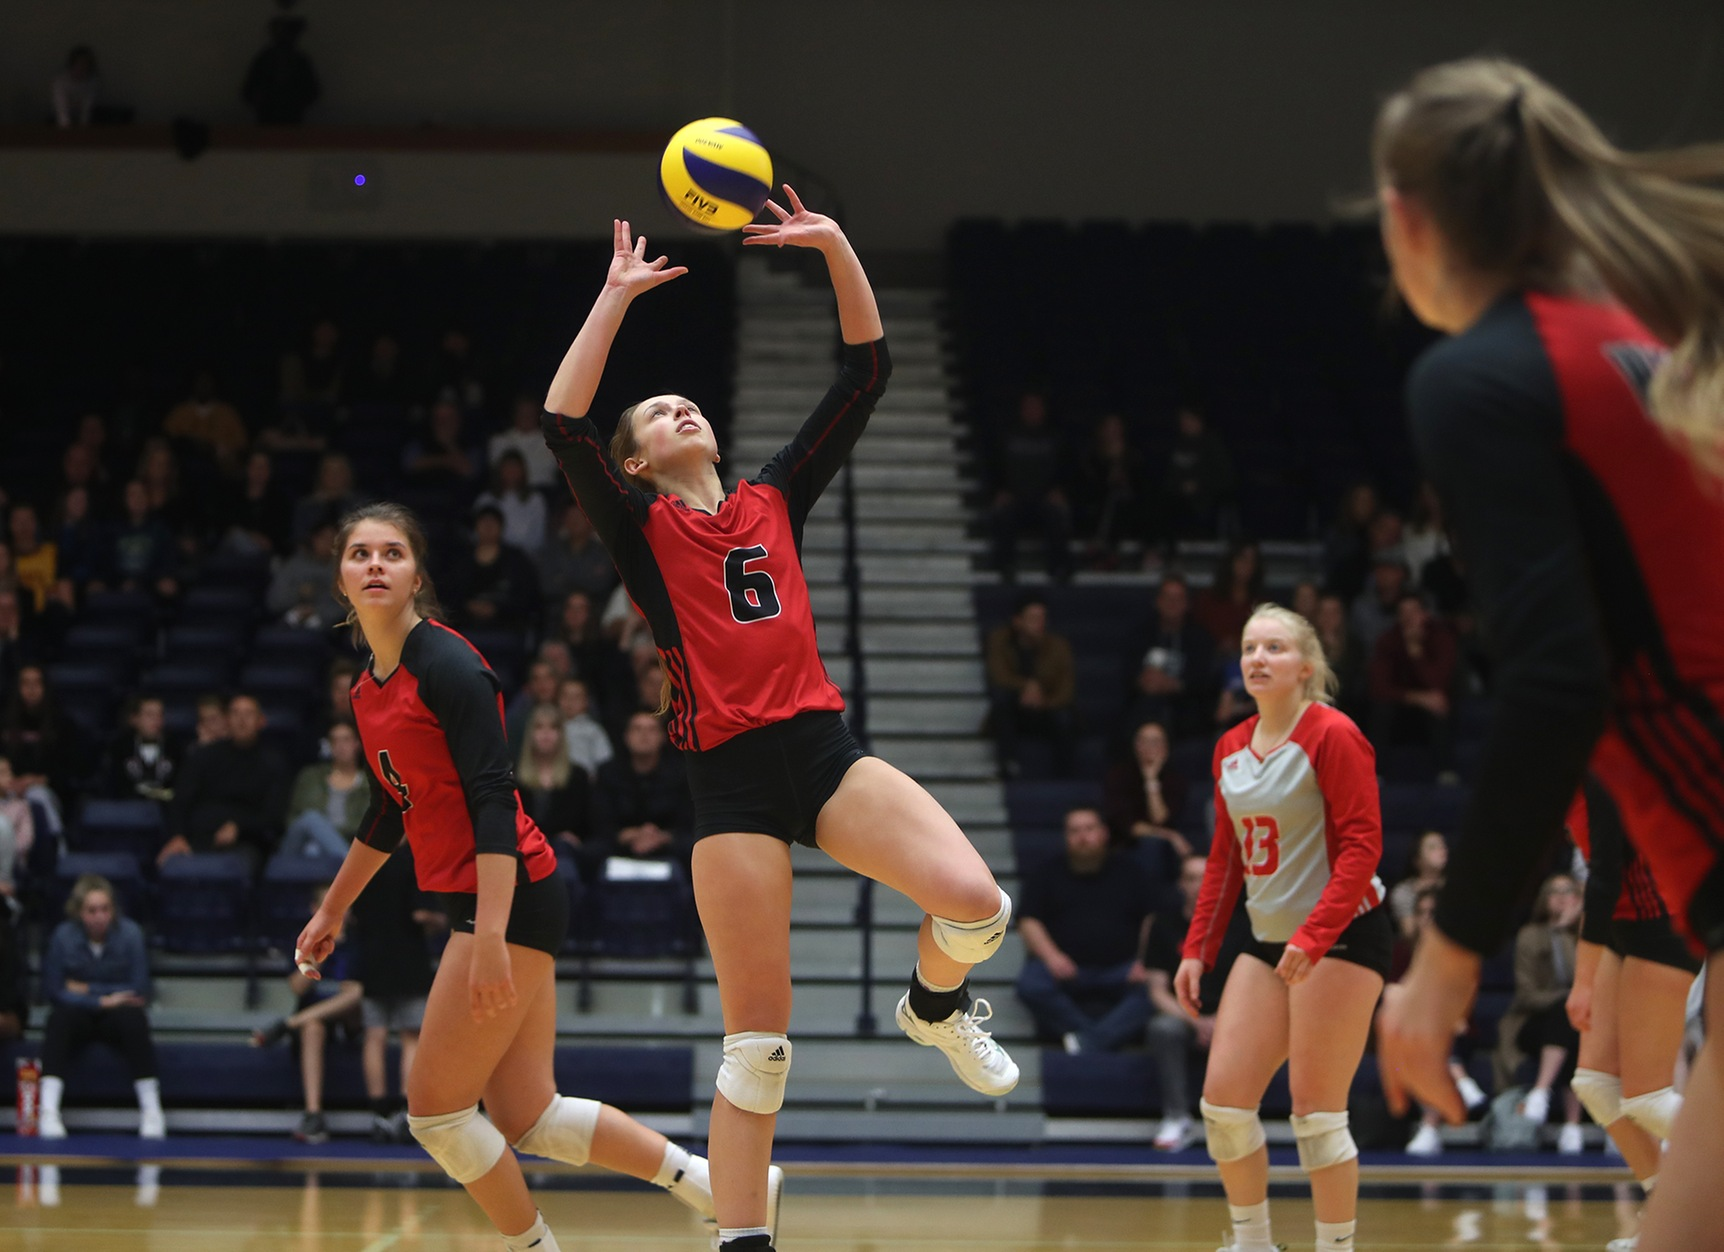 Wesmen setter Rylie Dickson sets up an attack during the women's volleyball team's match with the Trinity Western Spartans in Langley, B.C., Saturday, Oct. 26, 2019. (TWU photo)